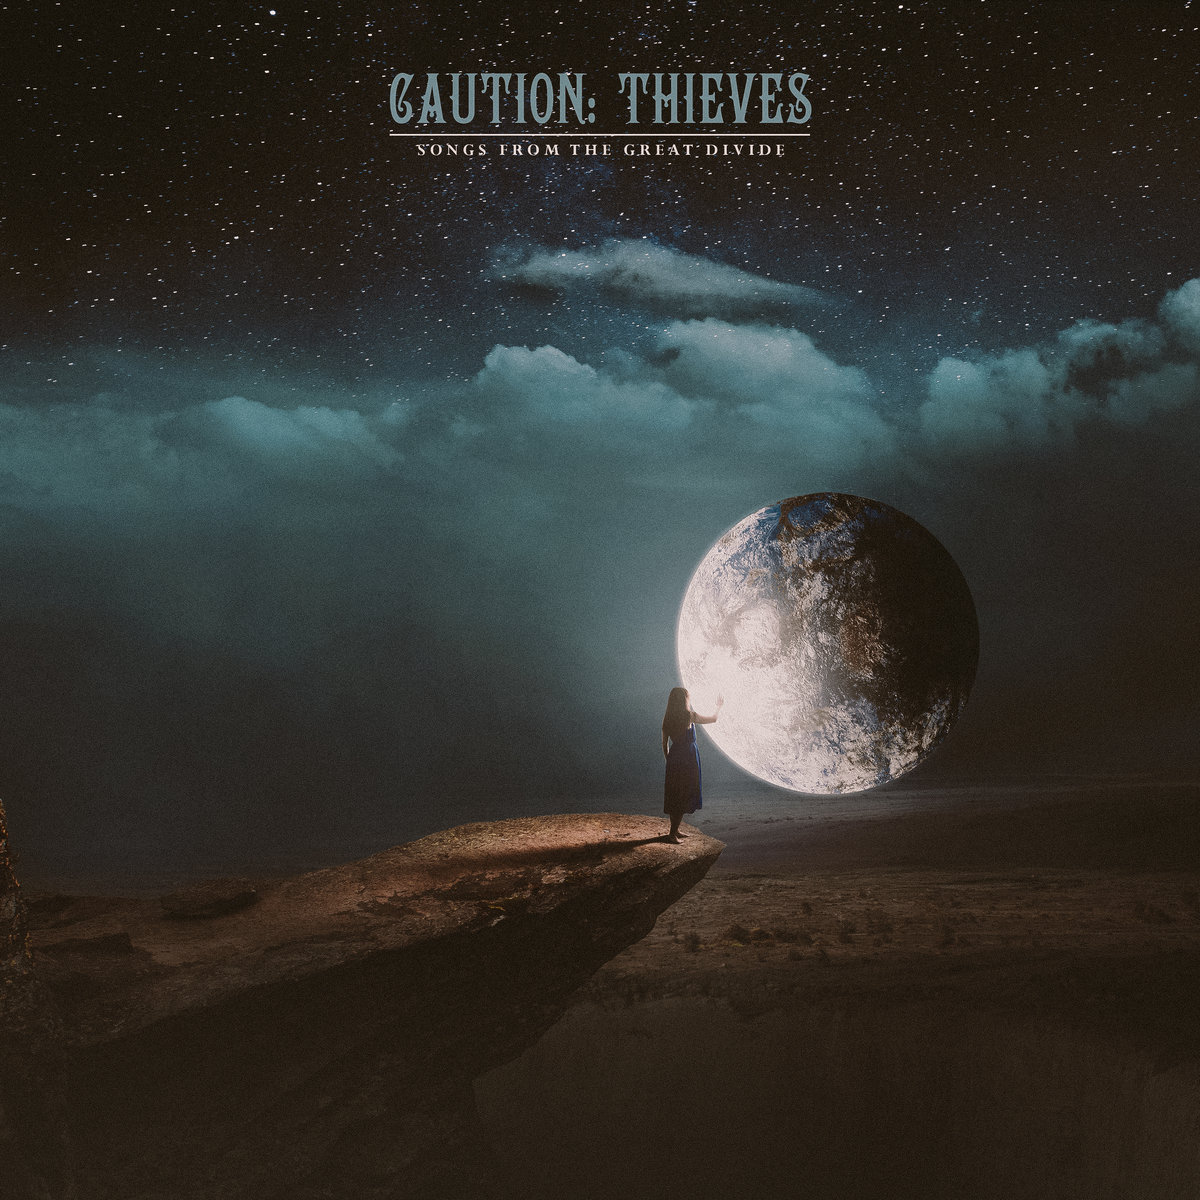 Songs From The Great Divide | caution:thieves